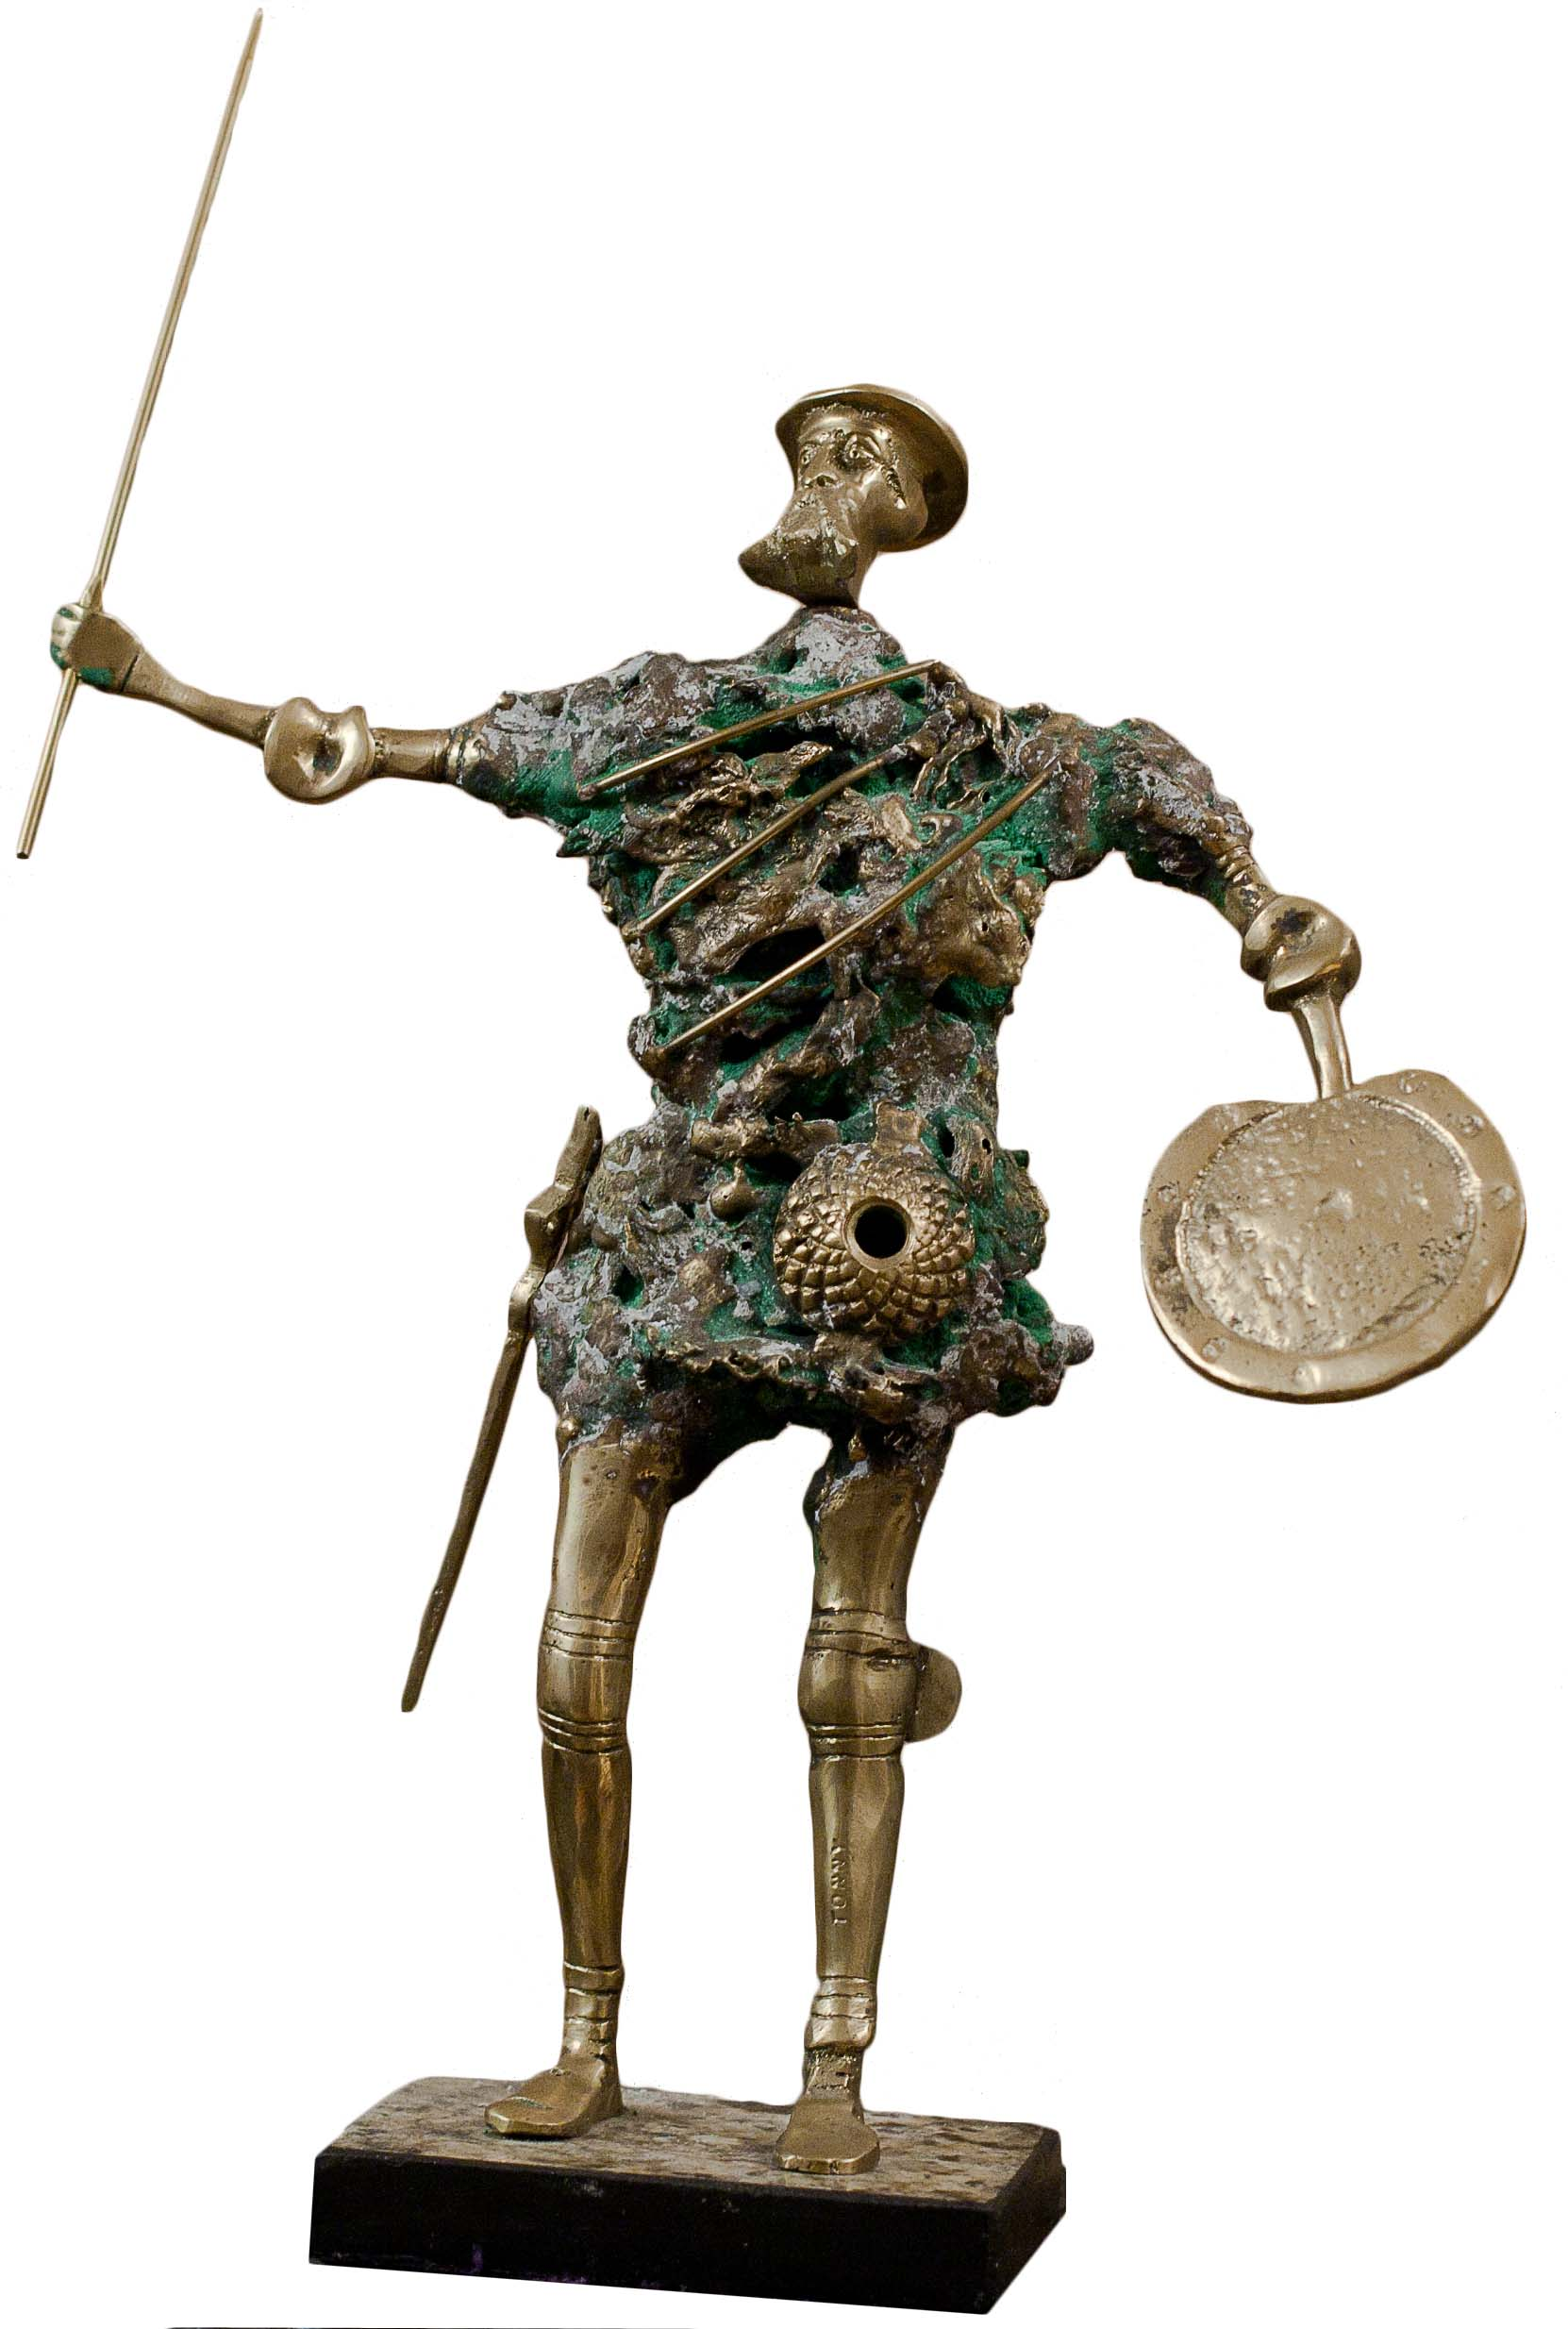 Don Quichot by Unknown. Bronze. 15.0 in x 5.0 in. 1987